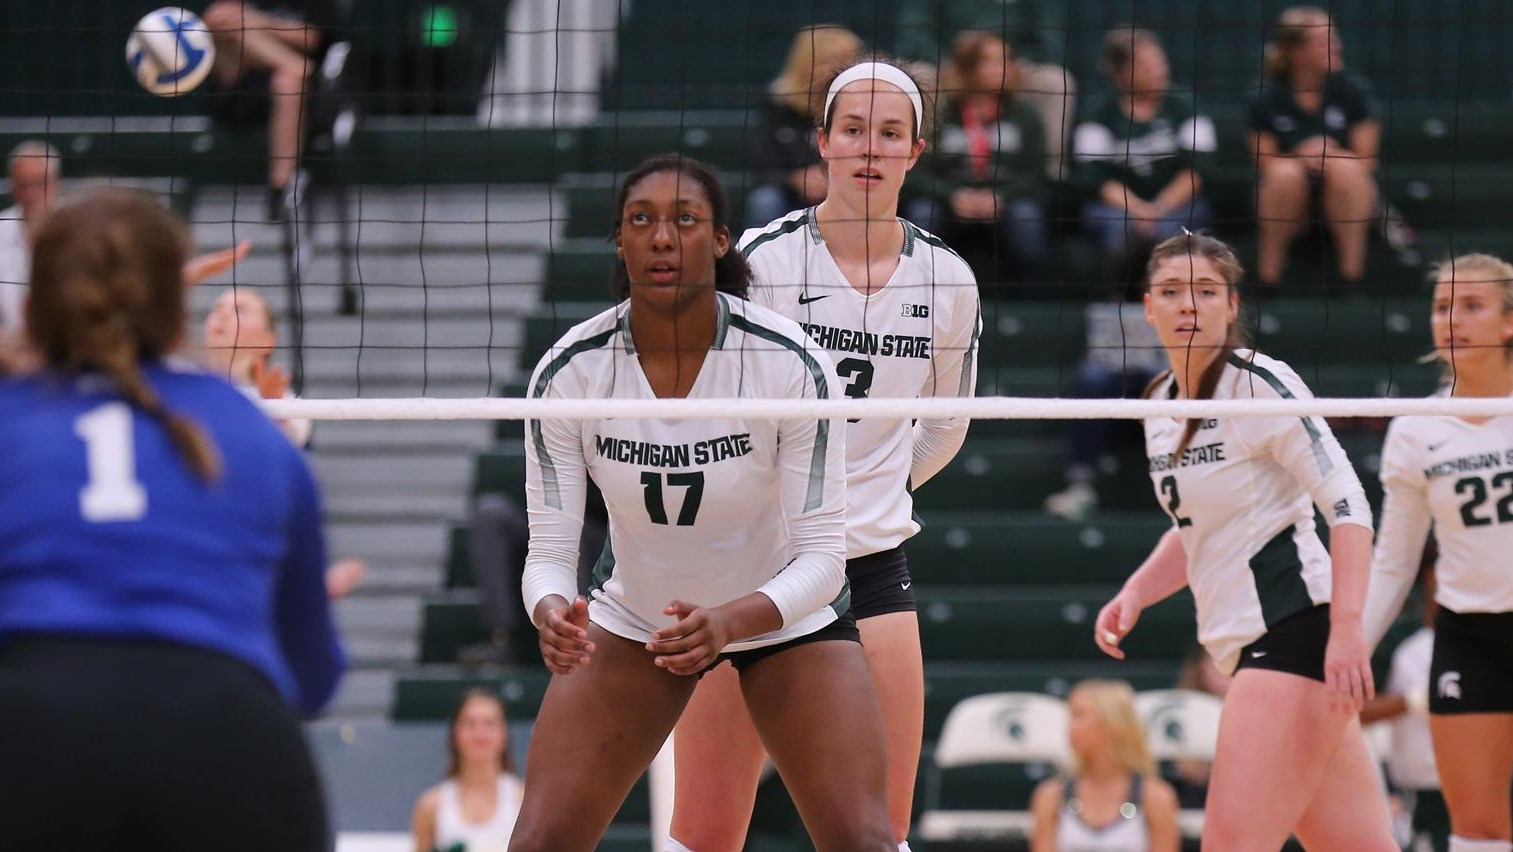 Meredith Norris Volleyball Michigan State University Athletics